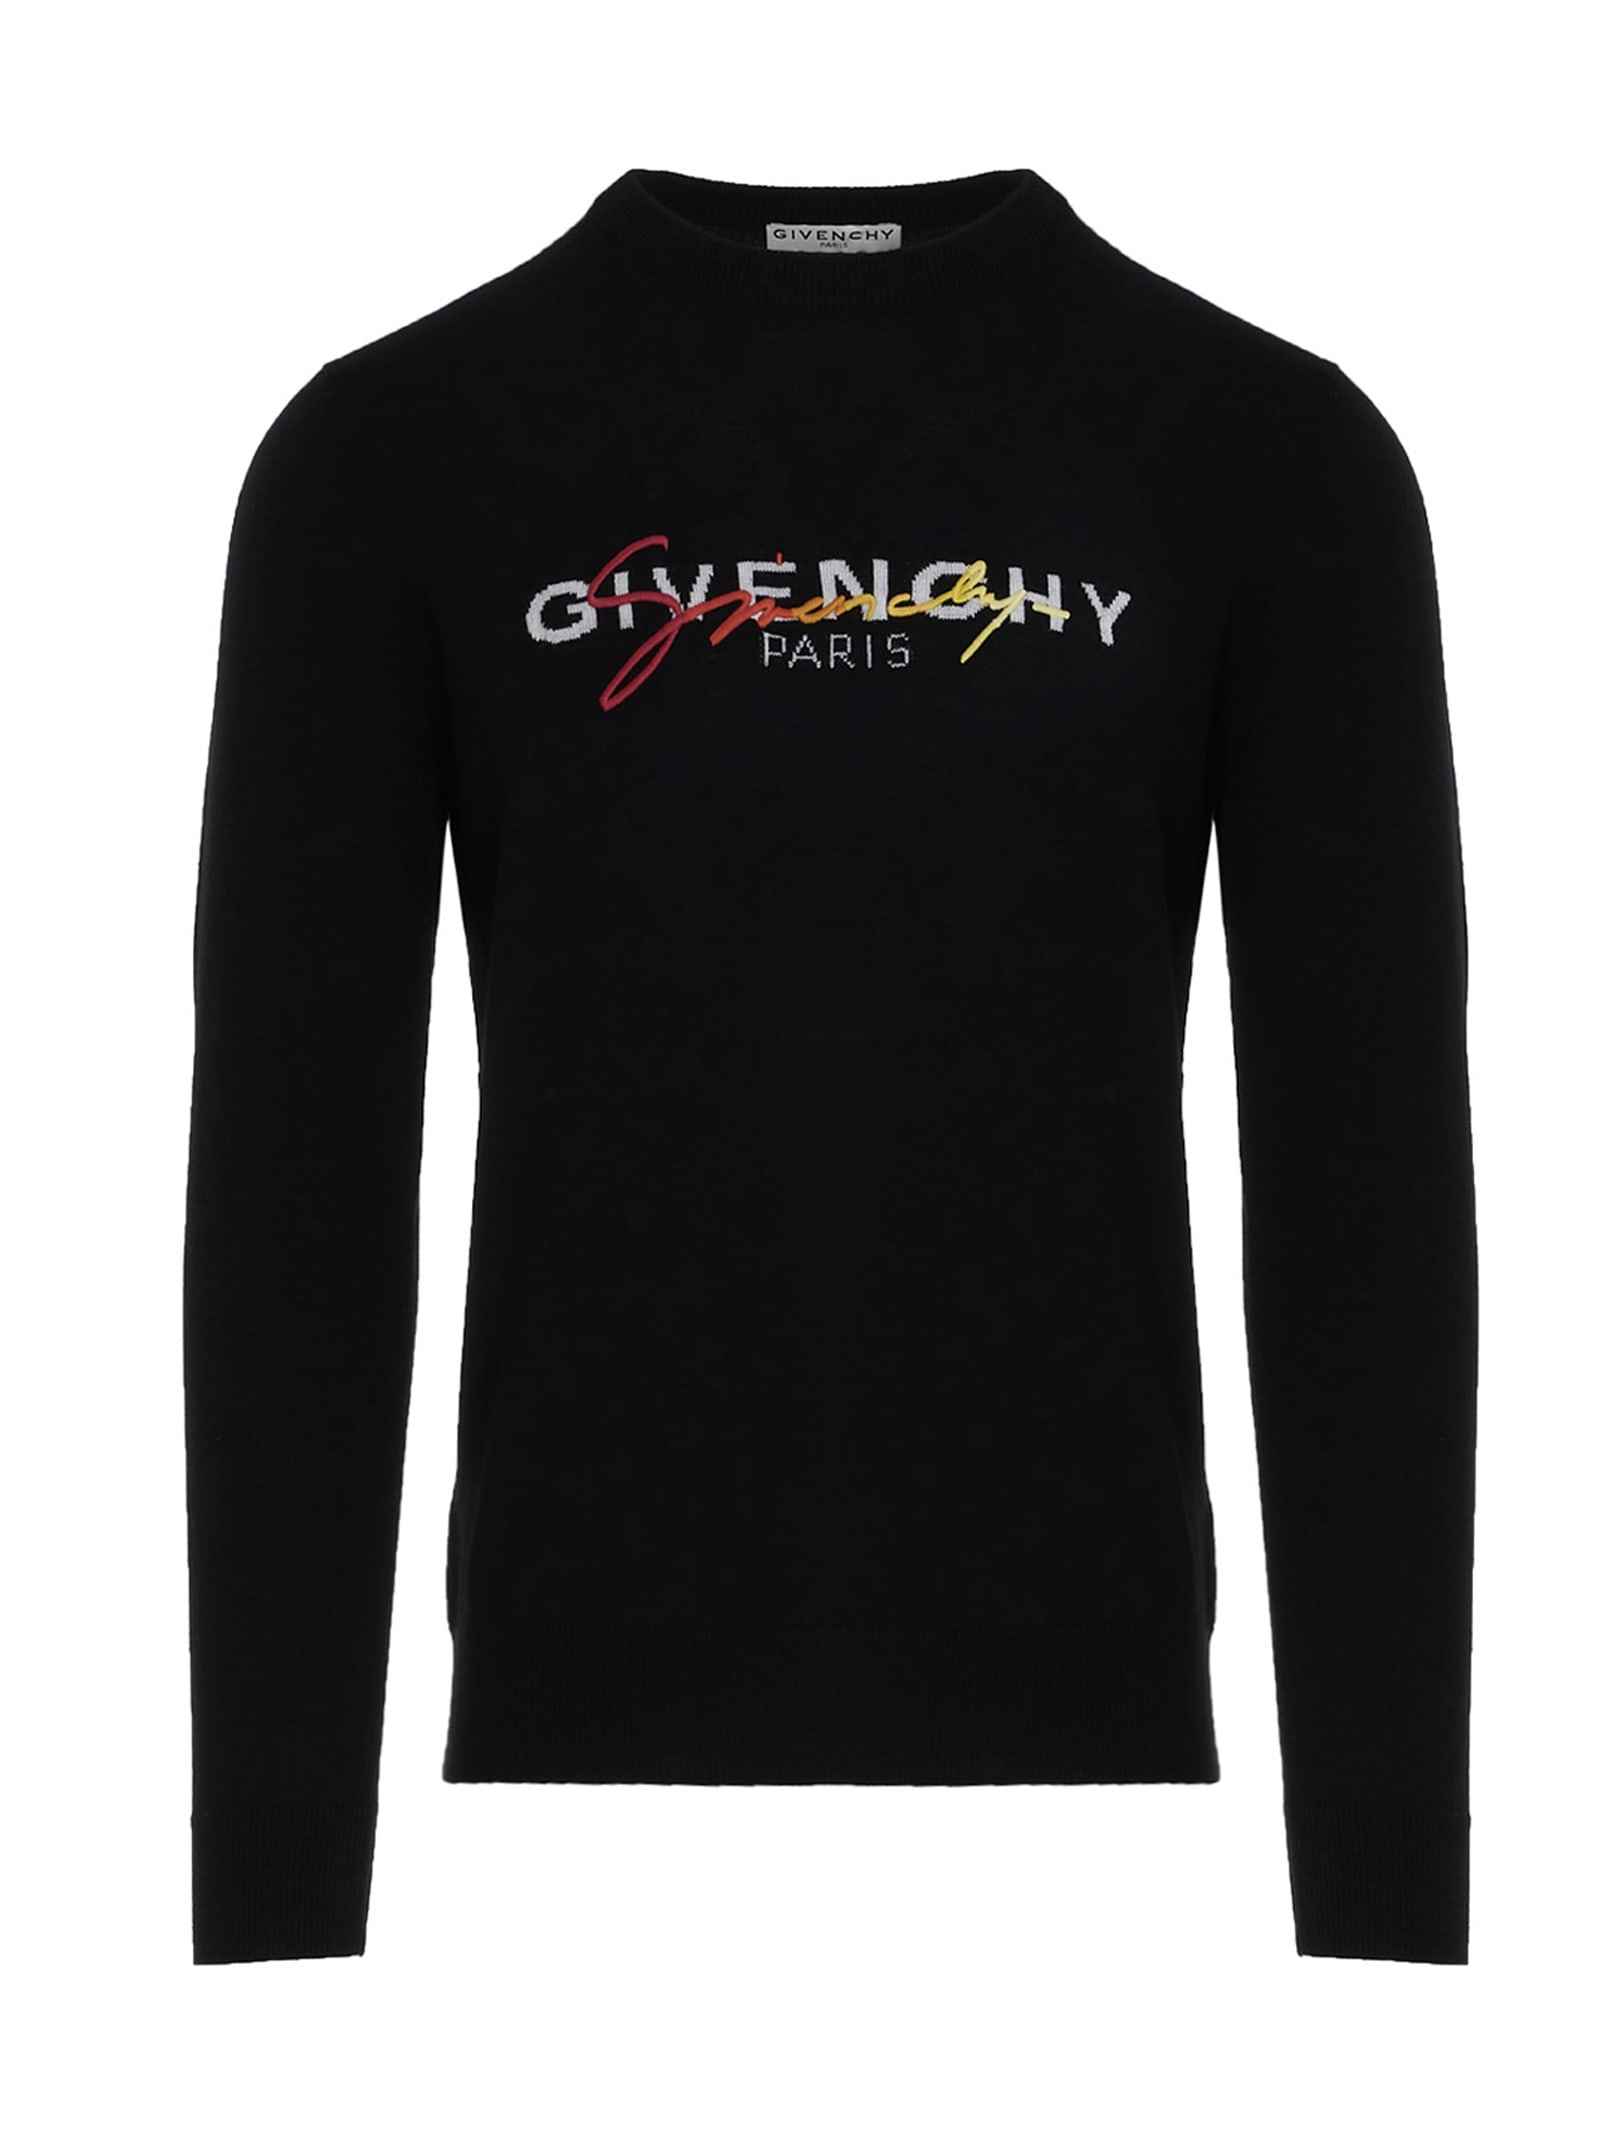 Givenchy givenchy Signaturesweater